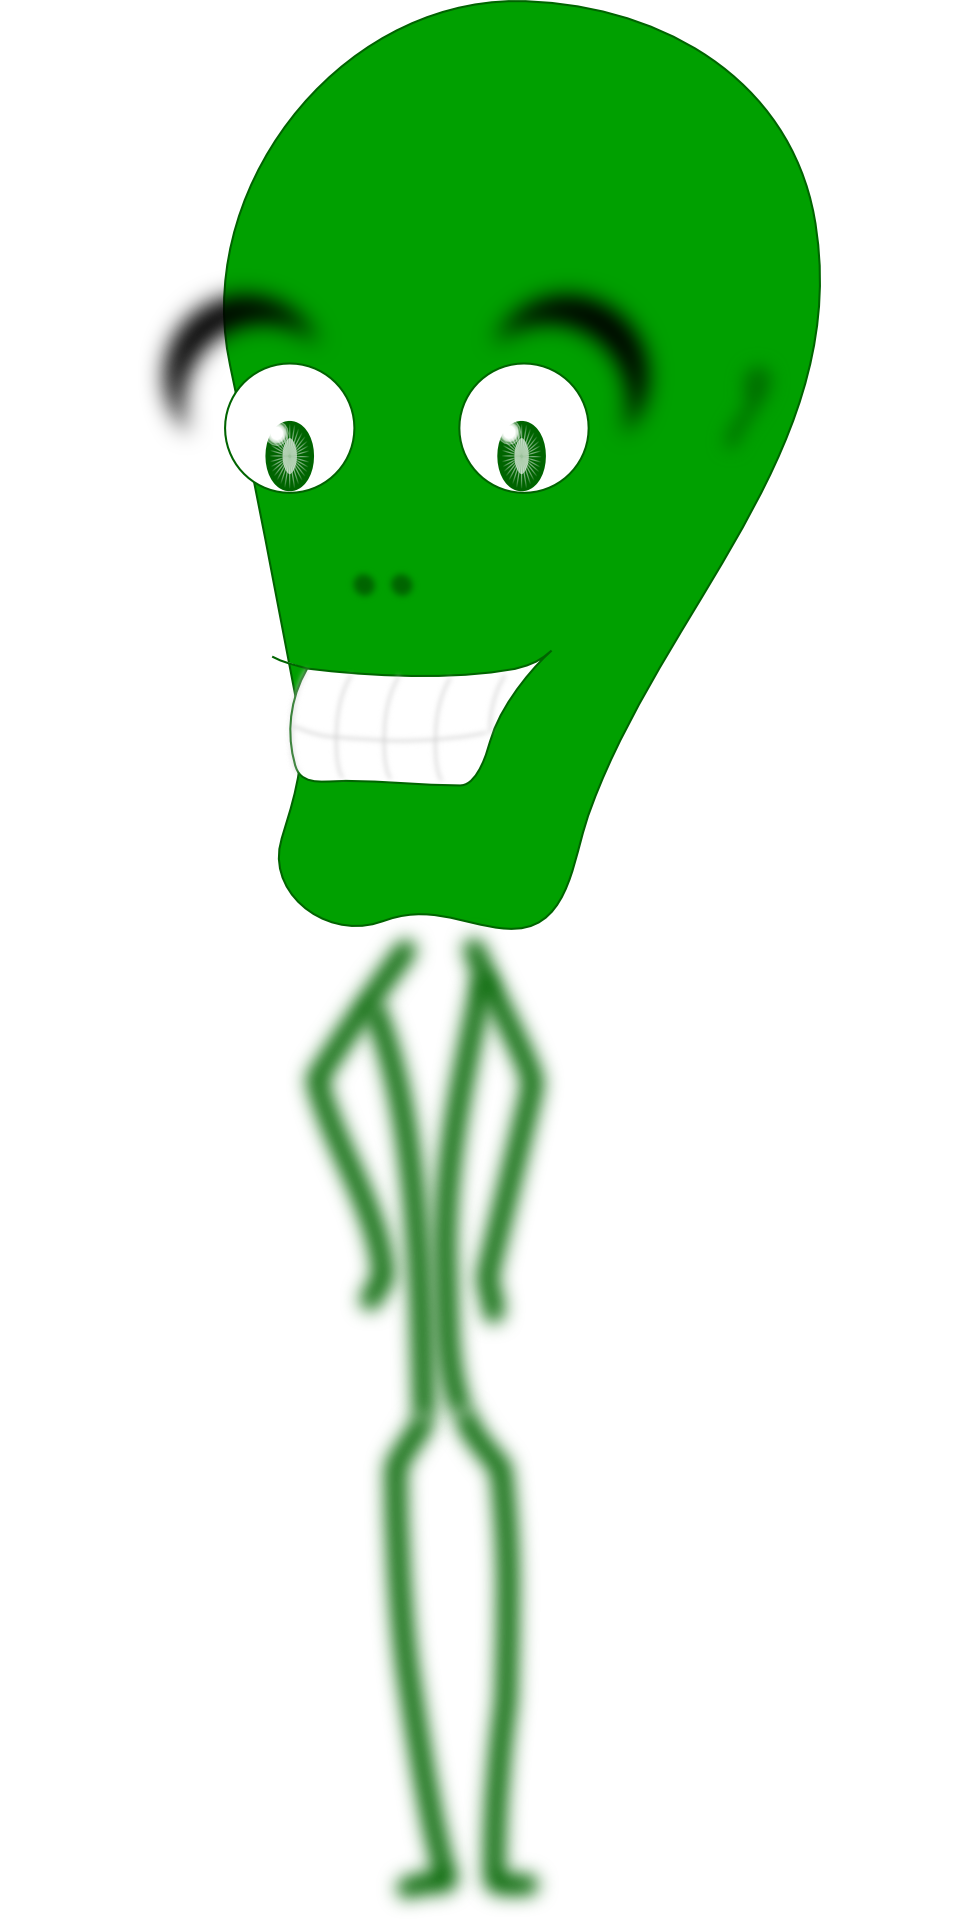 Standing Alien Clipart Free Image Download high quality alien clip art from our collection of 41,940,205 clip art graphics. https pixy org licence php